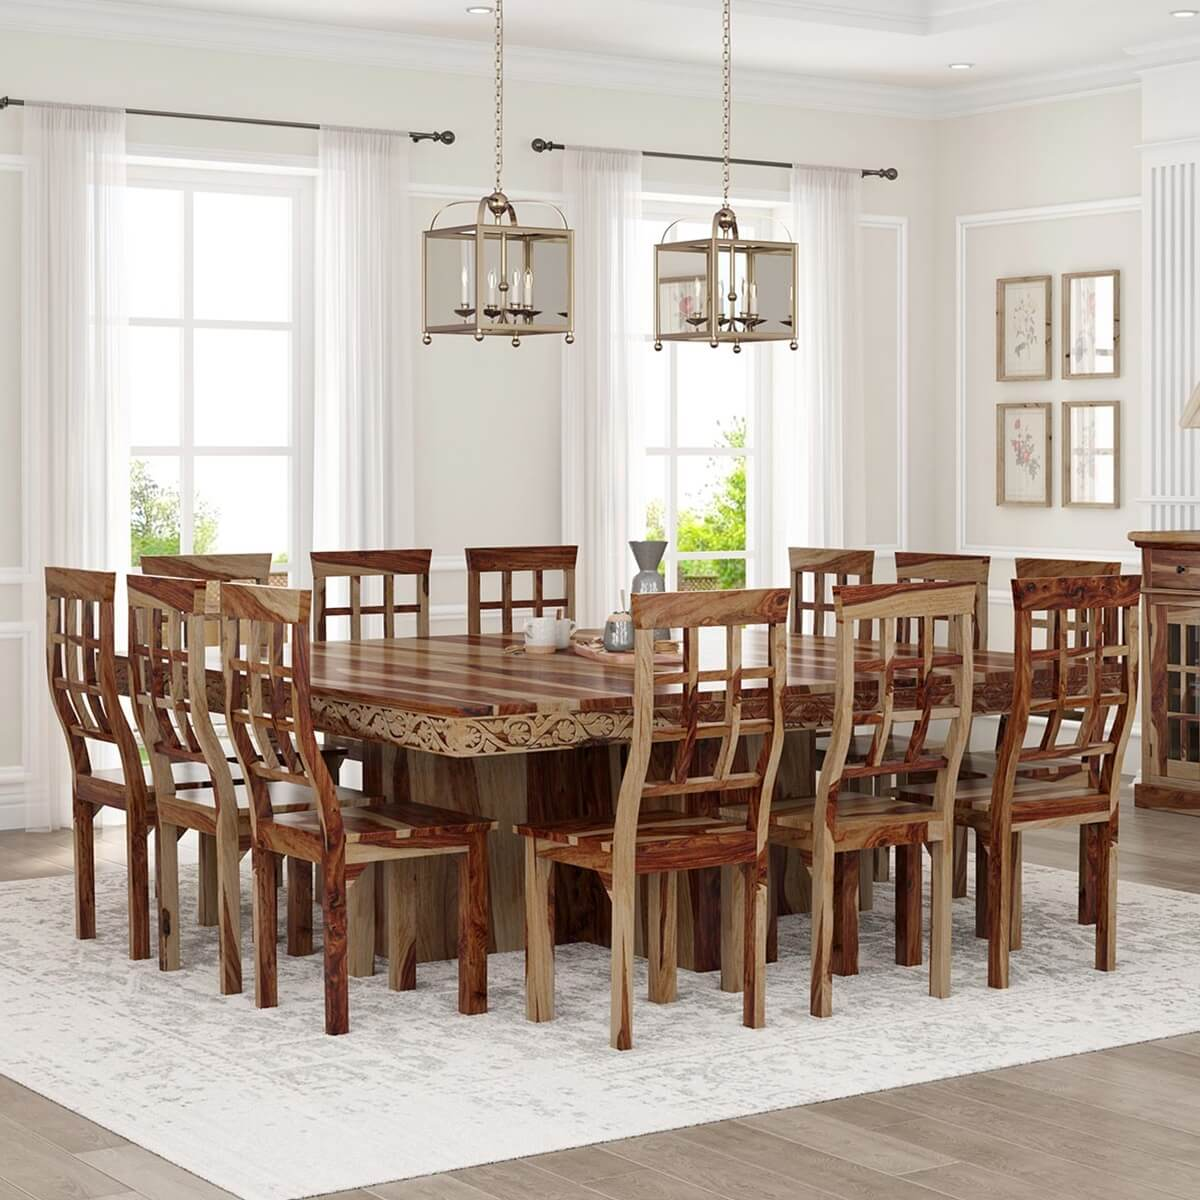 Dallas ranch large square dining room table and chair set for Large dining room sets